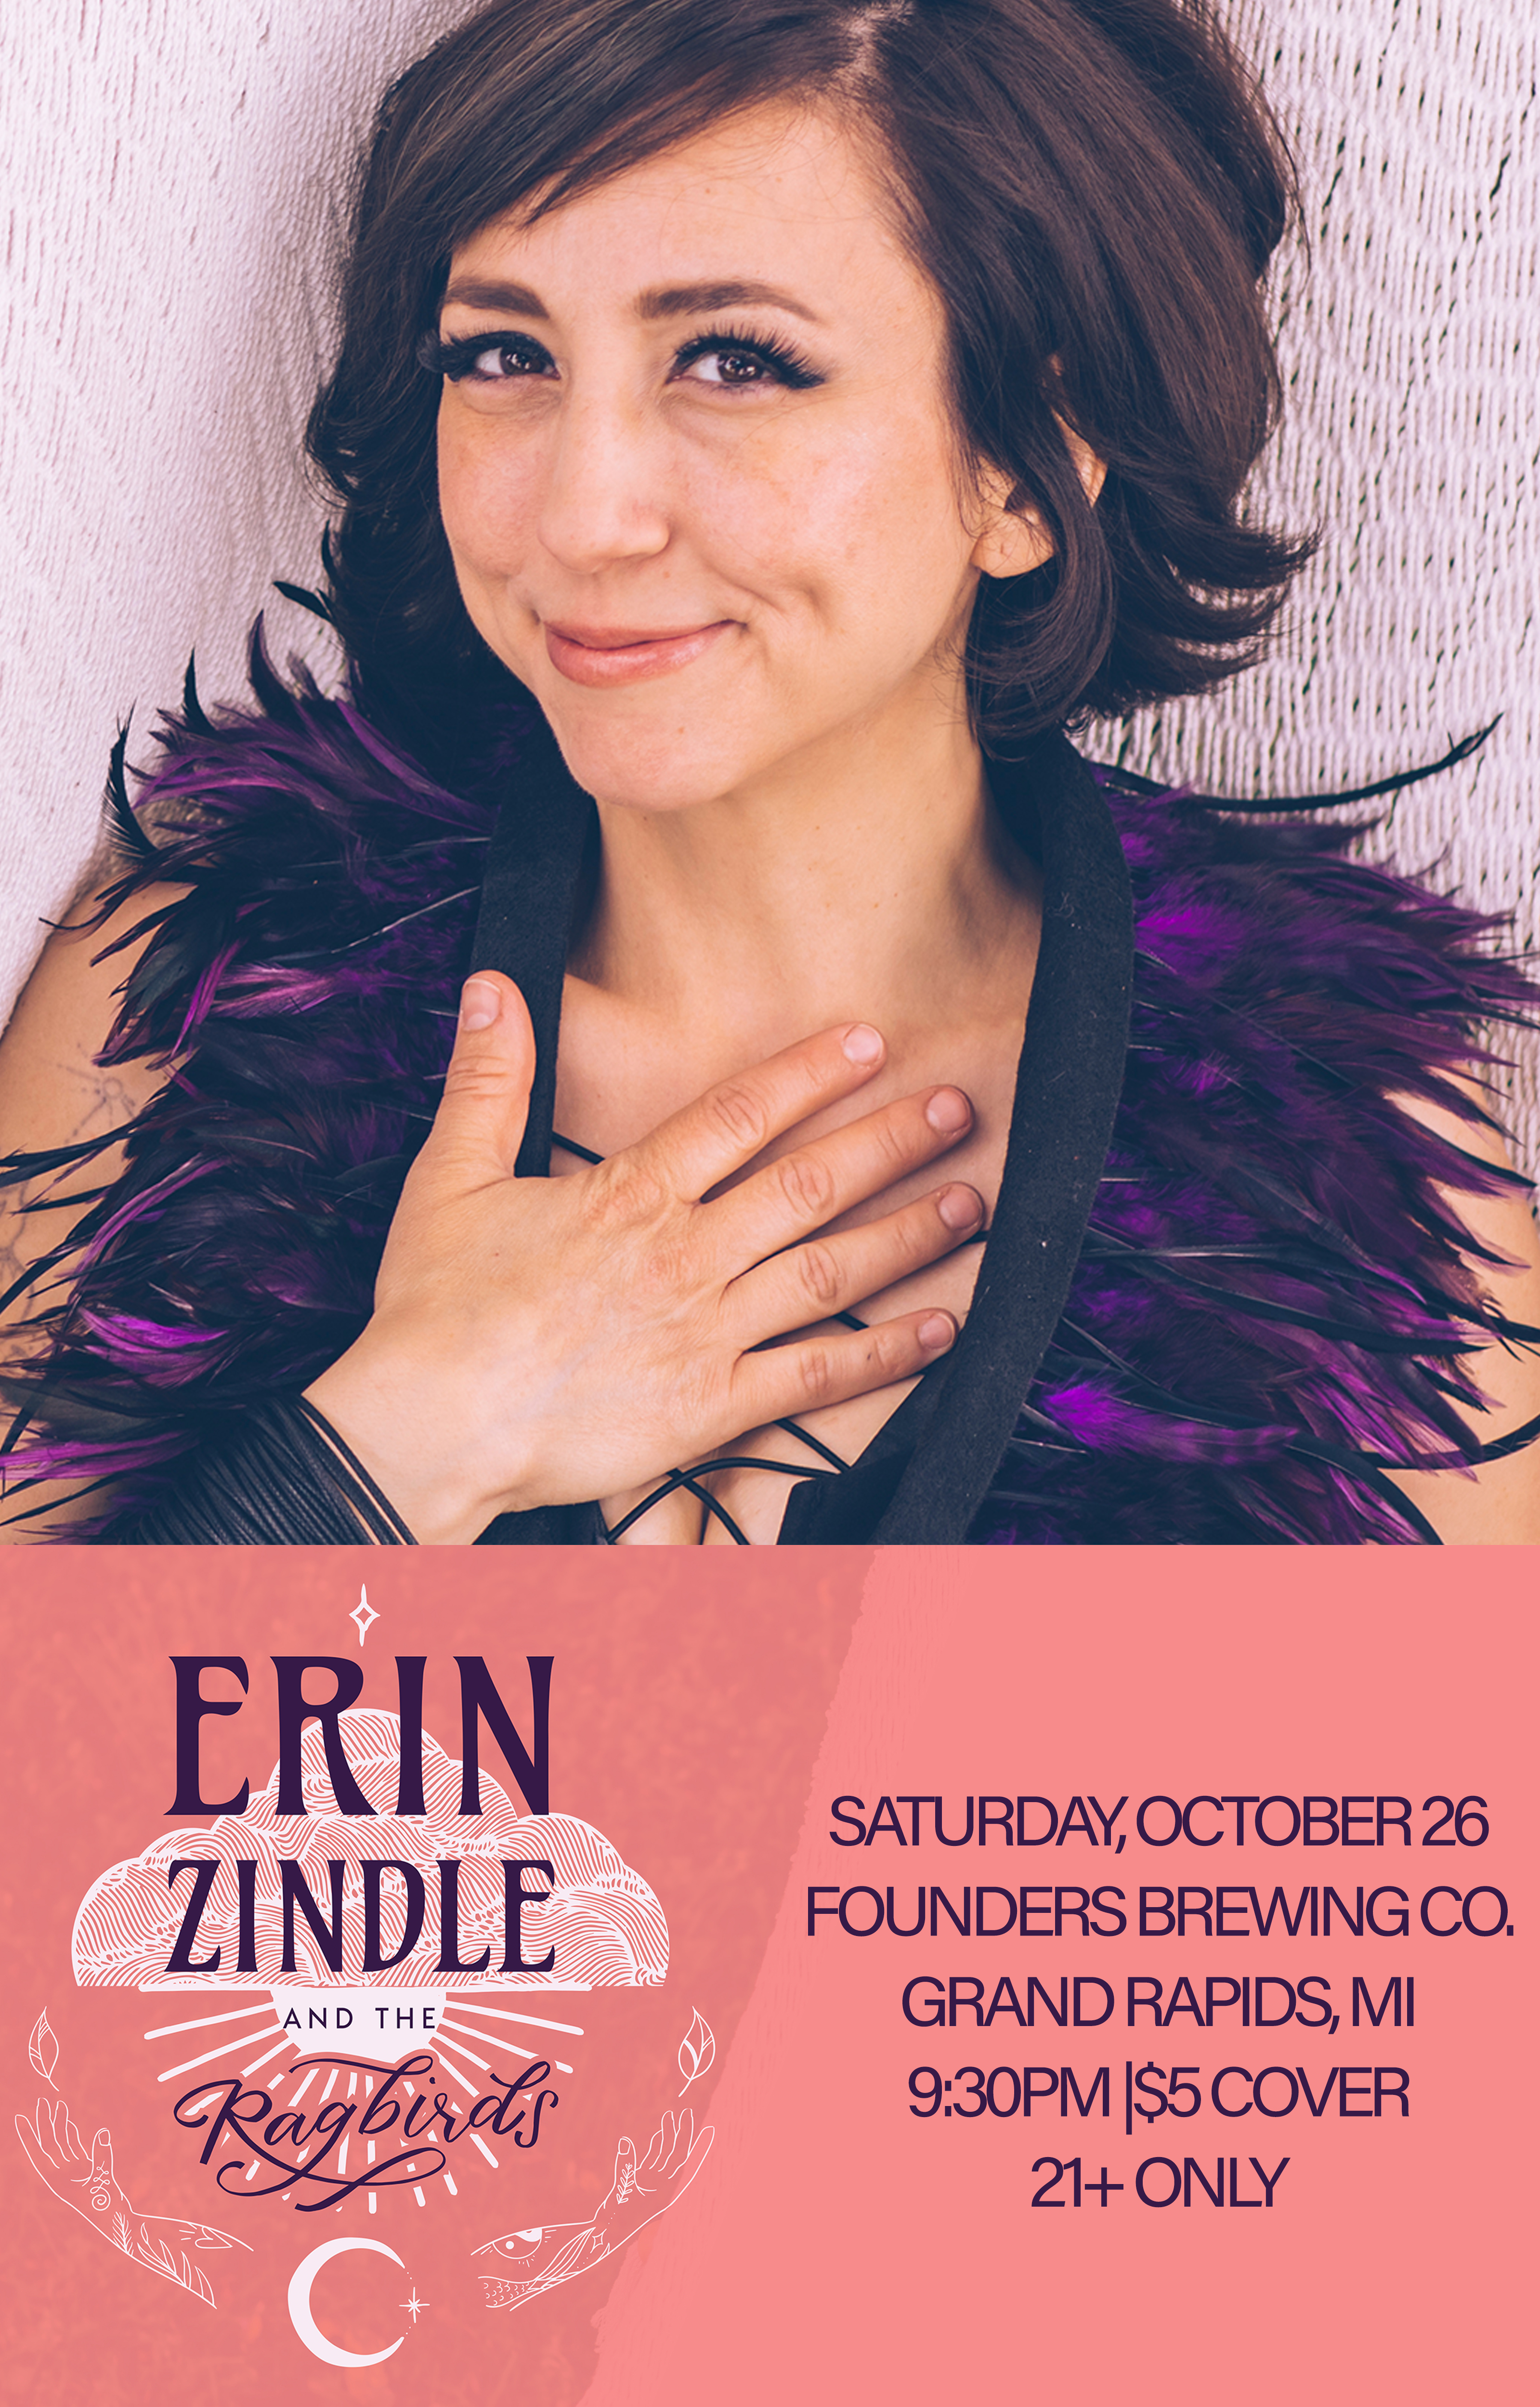 Erin Zindle event poster hosted by Founders Brewing Co.